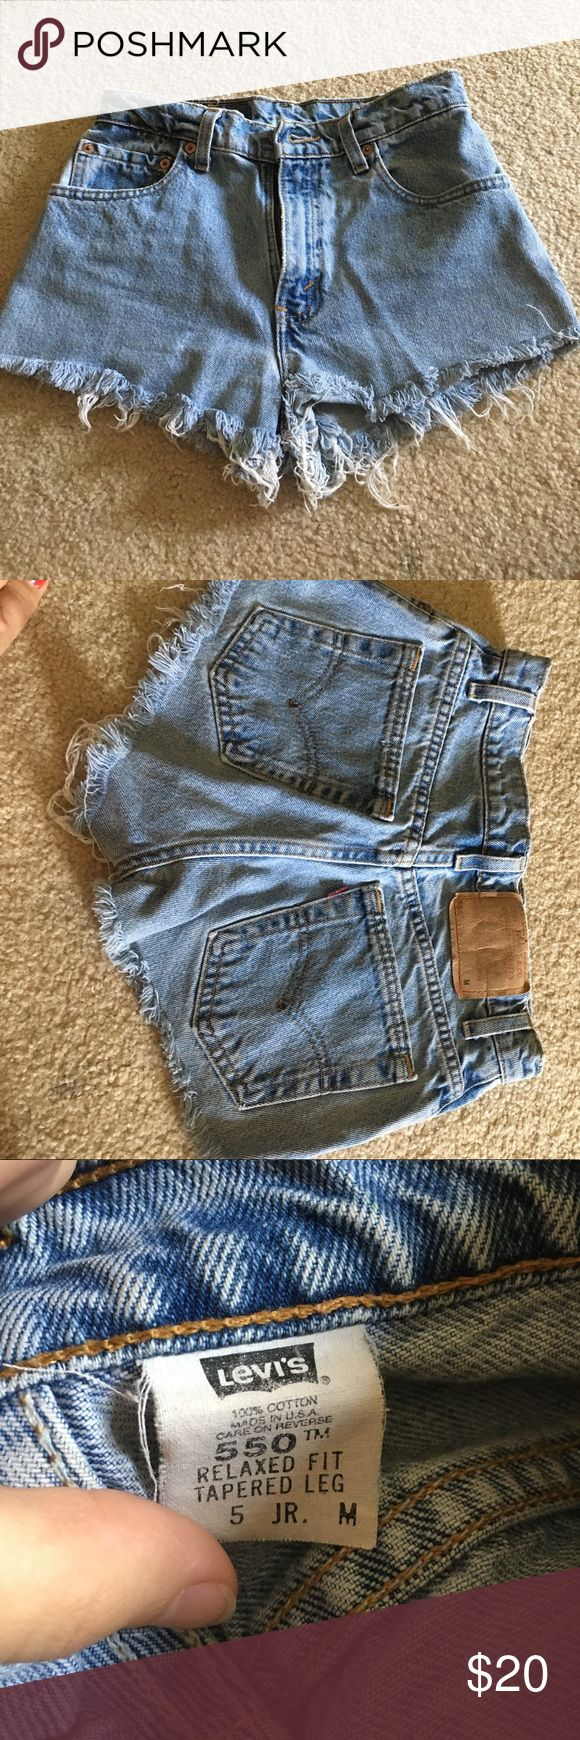 Levi Cutoff Jean Shorts Light Colored Levi Cutoff Jean Shorts Says Med but is in Jr Size so is like an XS or 00 Levi's Shorts Jean Shorts